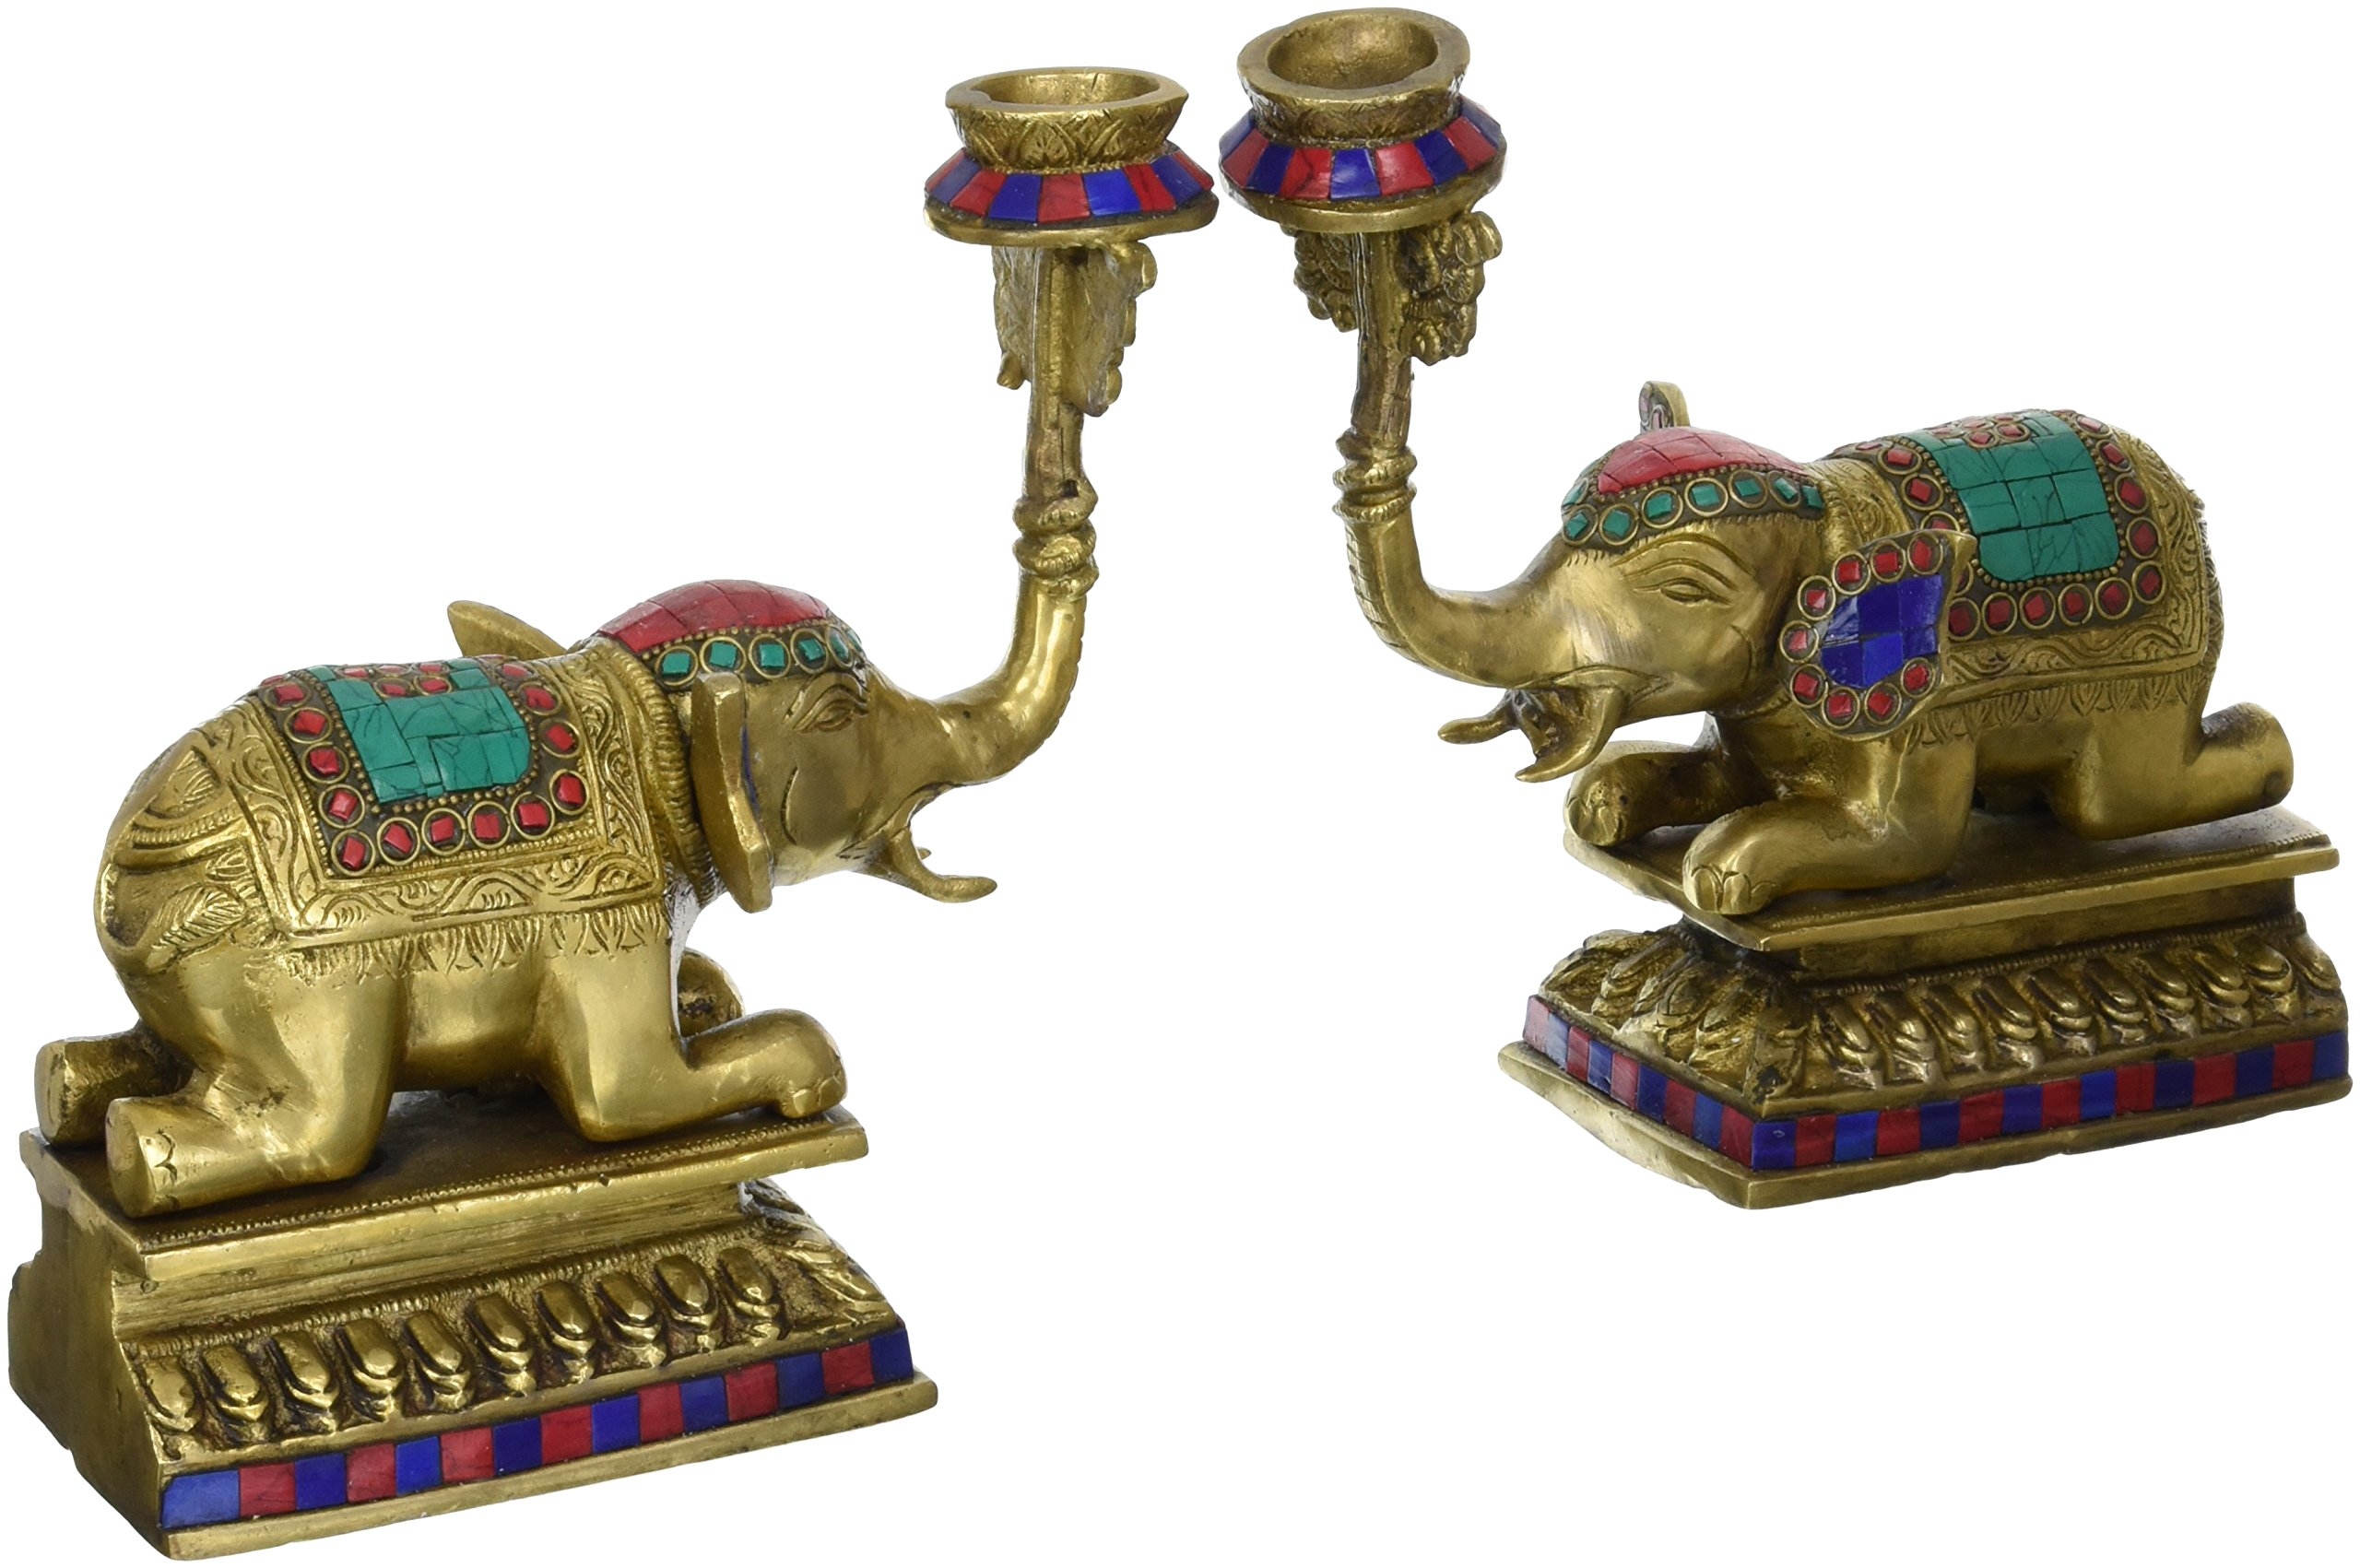 Aone India 9'' Large Candle Holder Set Elephant Statue -Brass with Coral Work - Beautiful Home Decor + Cash Envelope (Pack Of 10)